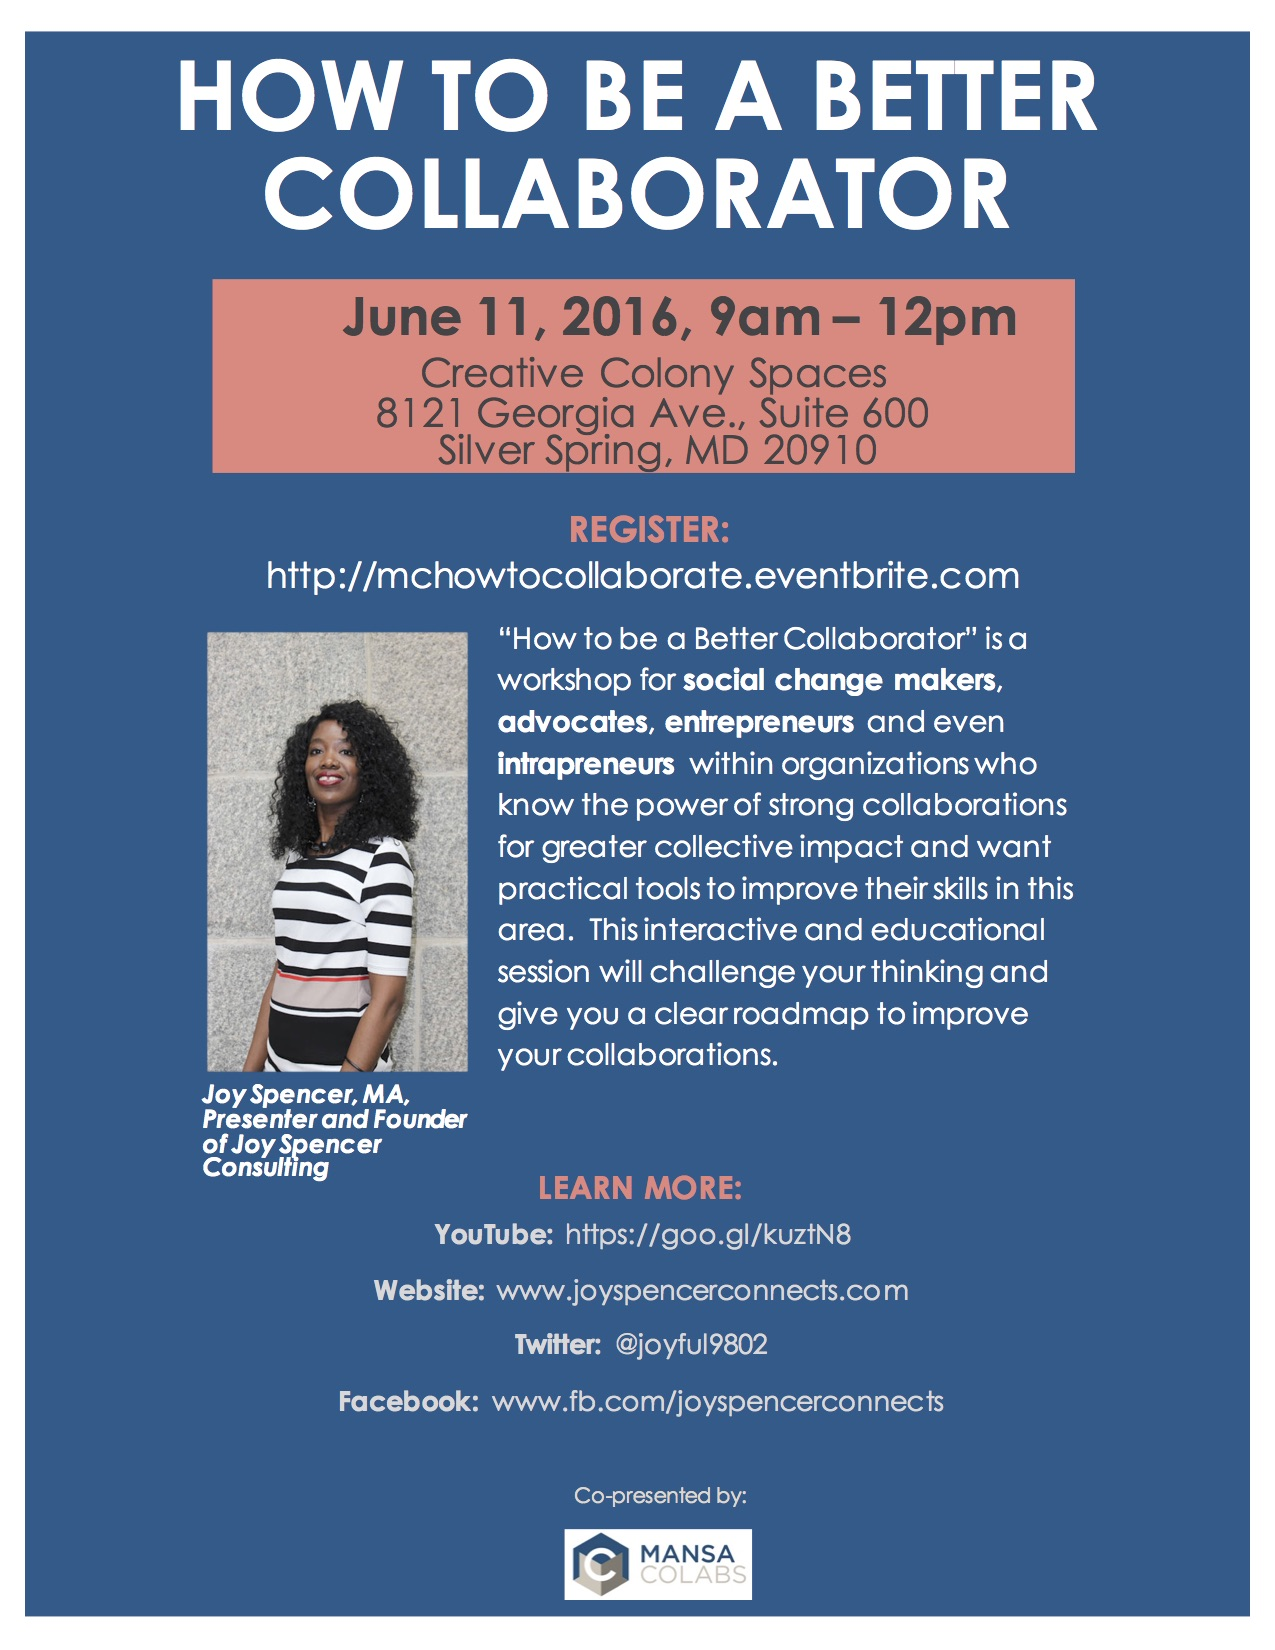 Flyer for How to be A Better Collaborator